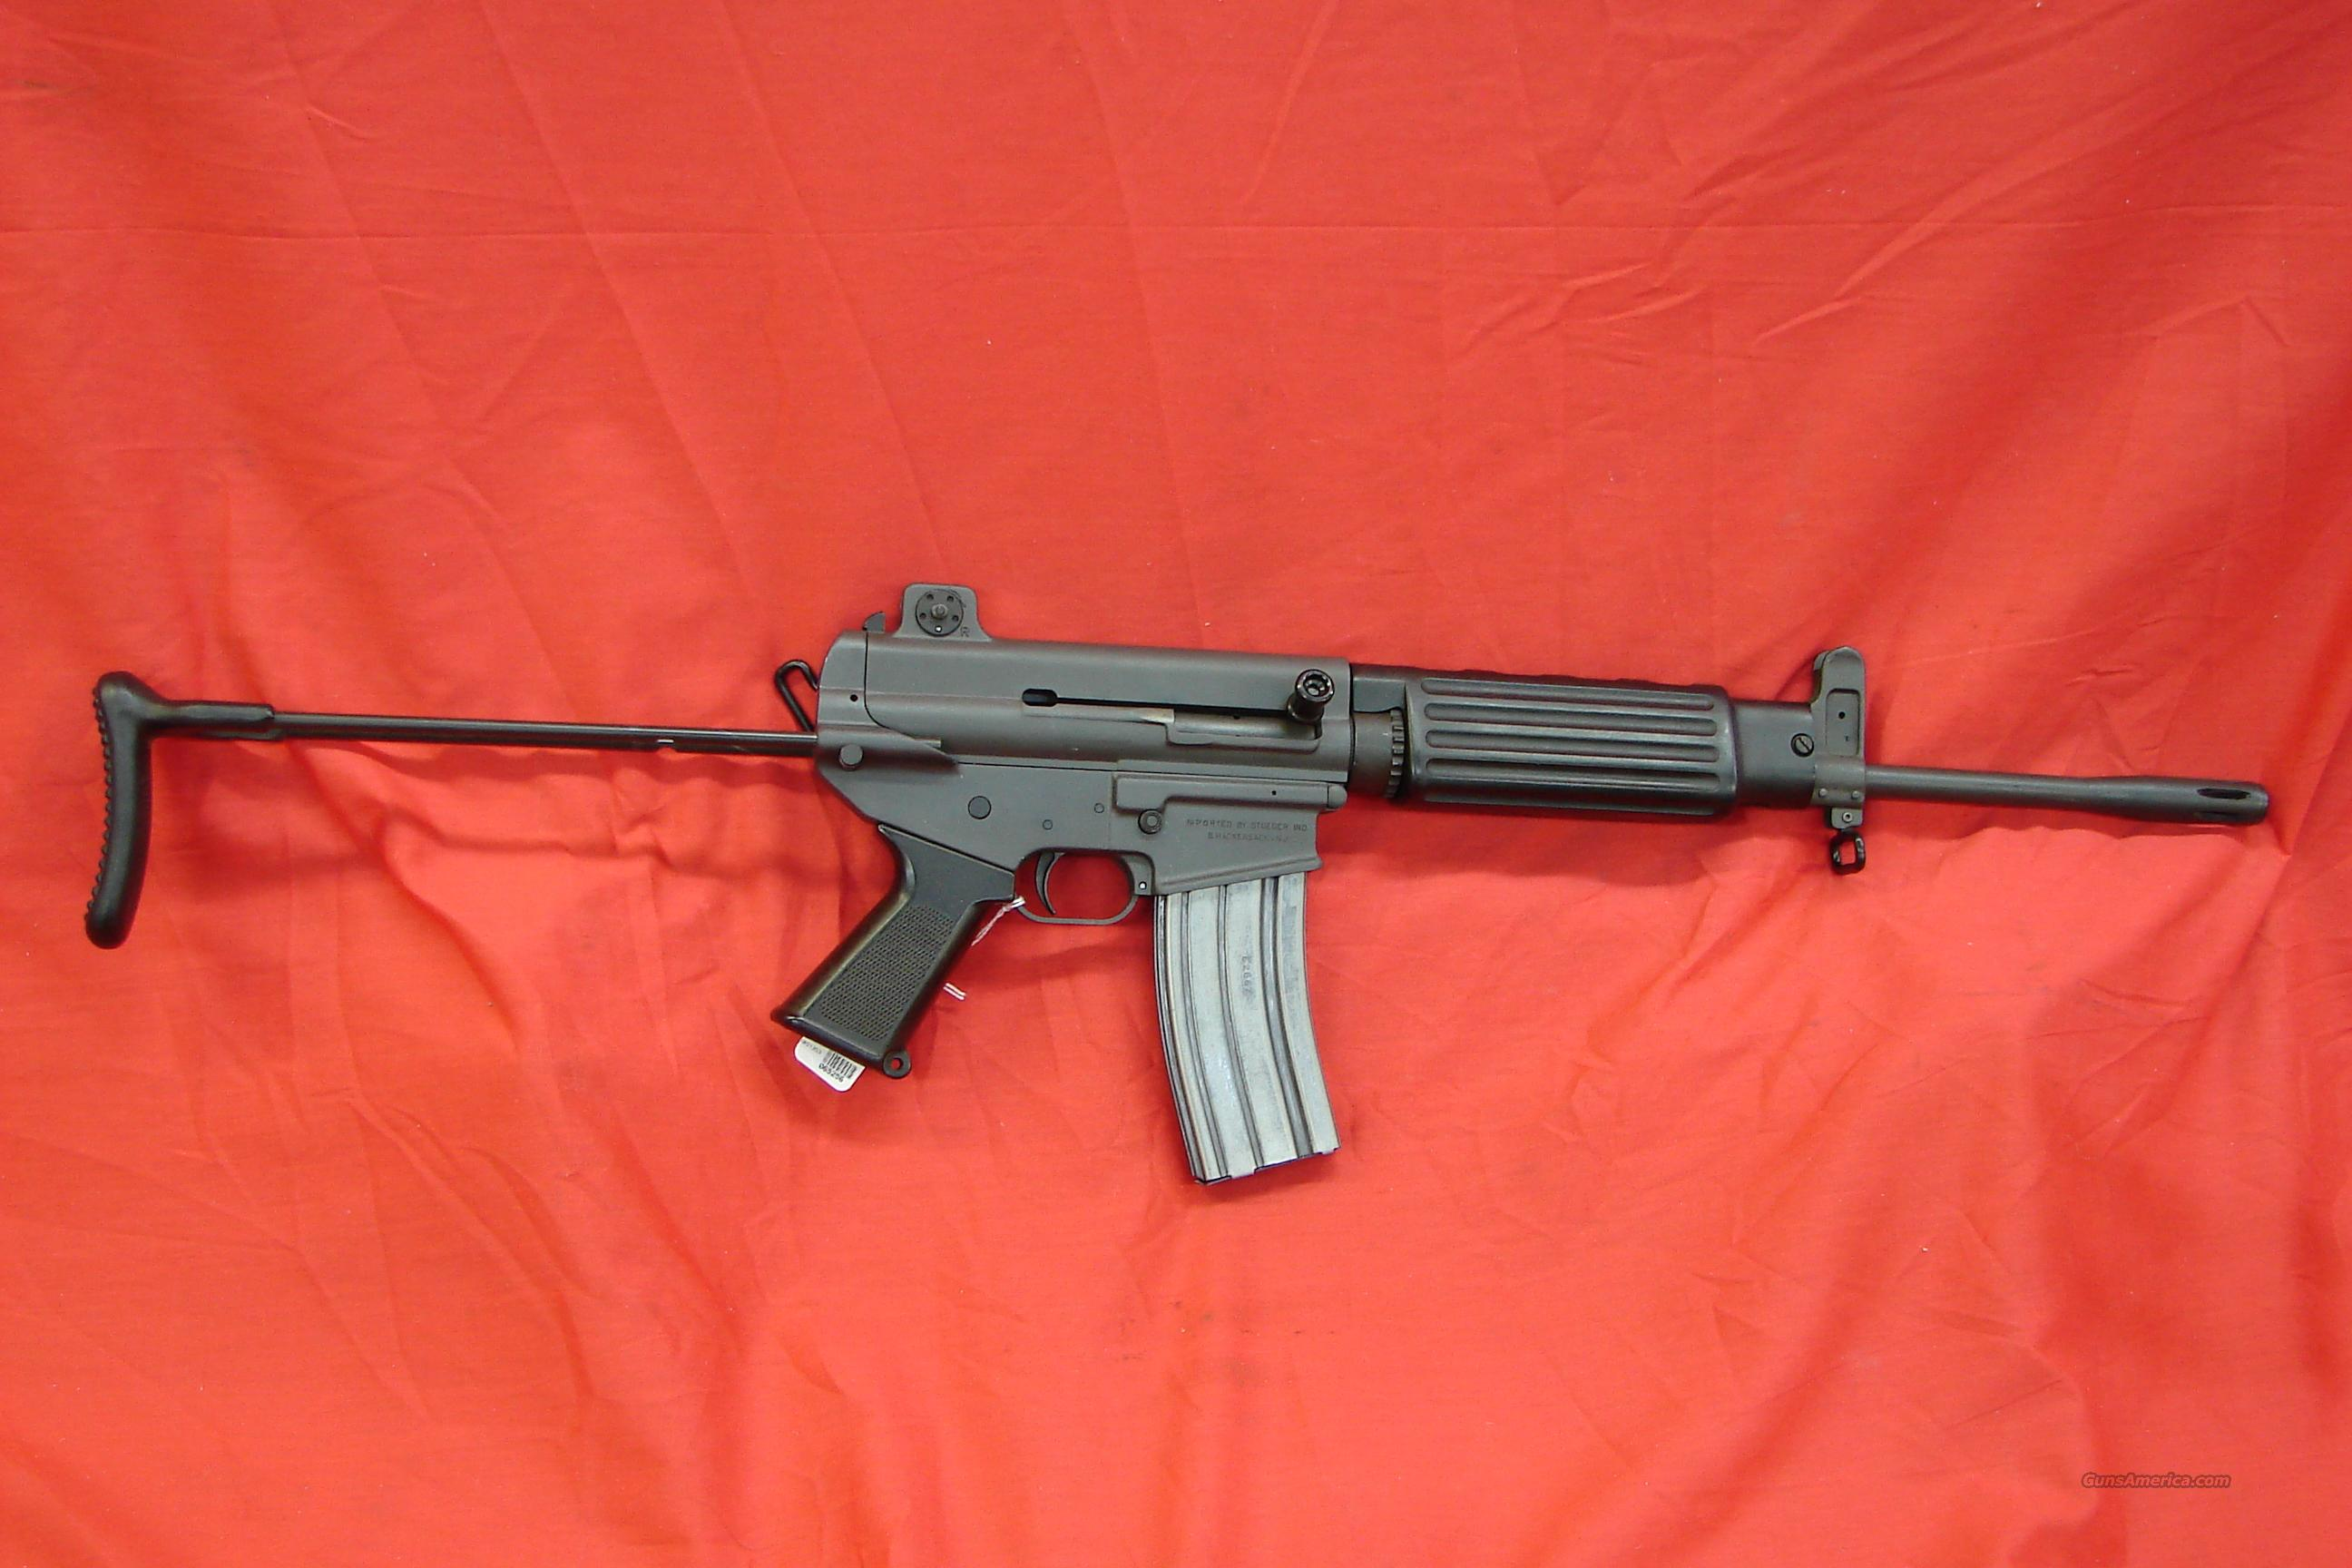 Daewoo K1A1 Rifle in 5.56mm for sale